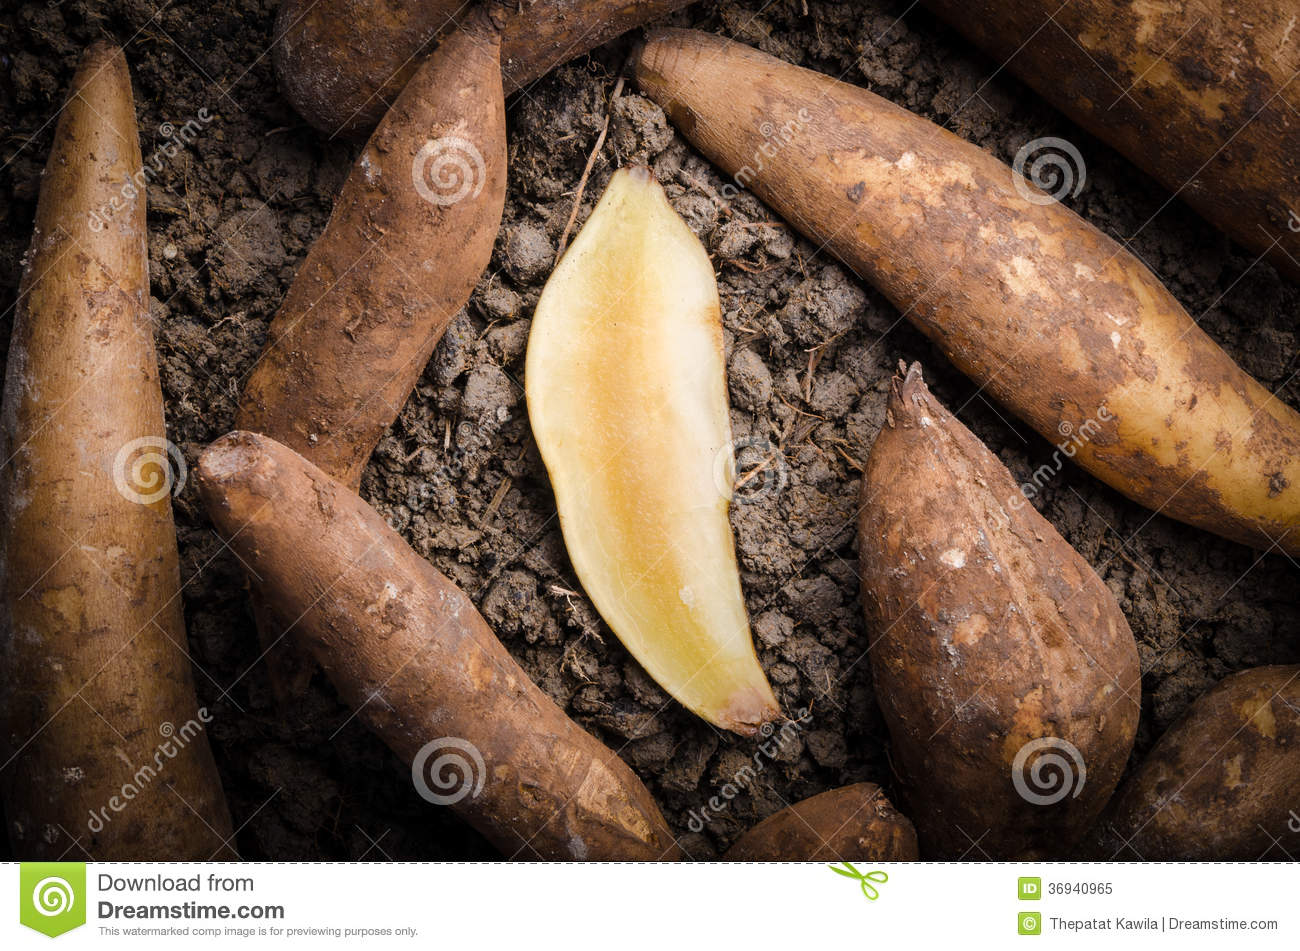 Fresh yacon root royalty free stock photo image 36940965 for Soil xat cut off